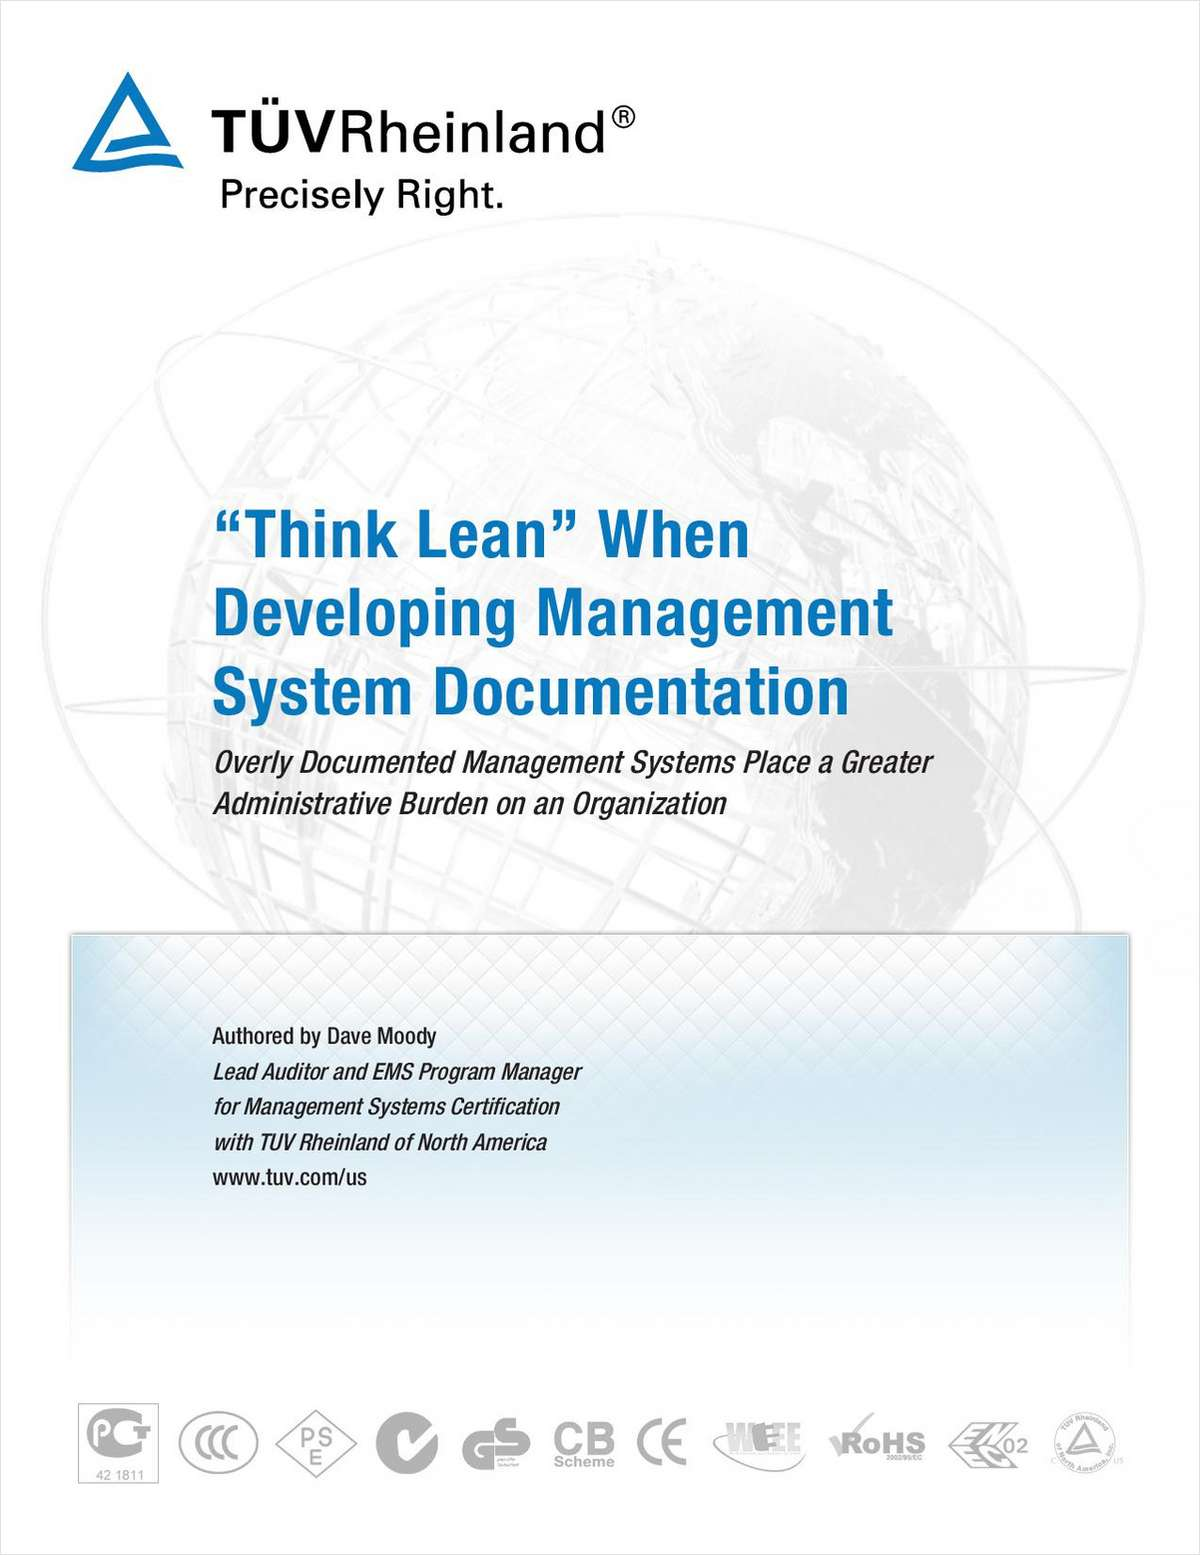 'Think Lean' When Developing Management System Documentation